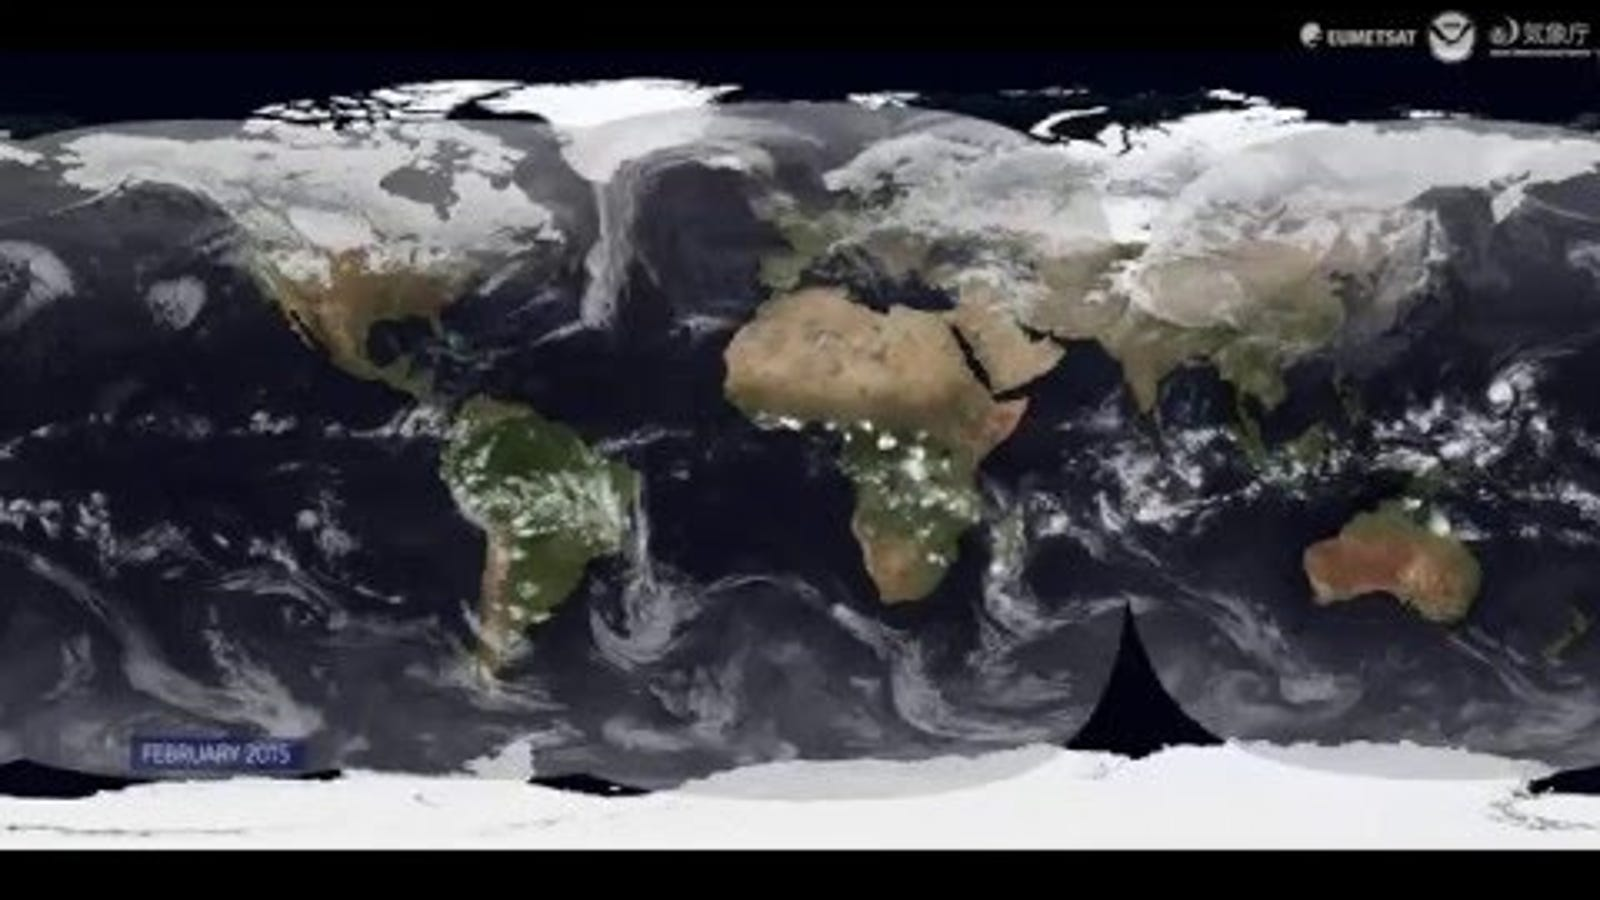 Watch an Entire Year of Weather In One Video